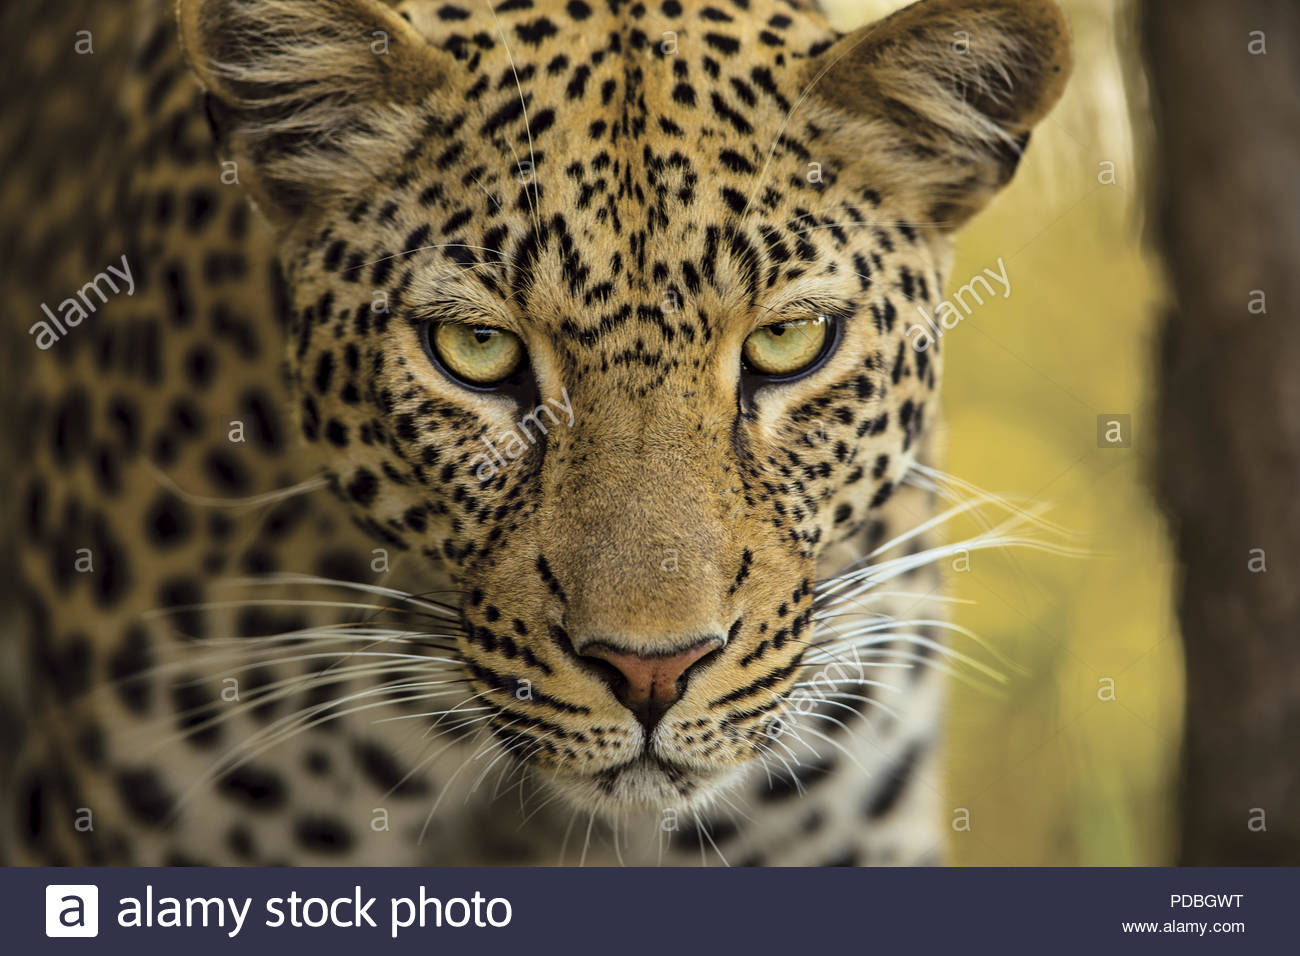 The Face Of A Leopard Stock Photo 214769684 Alamy